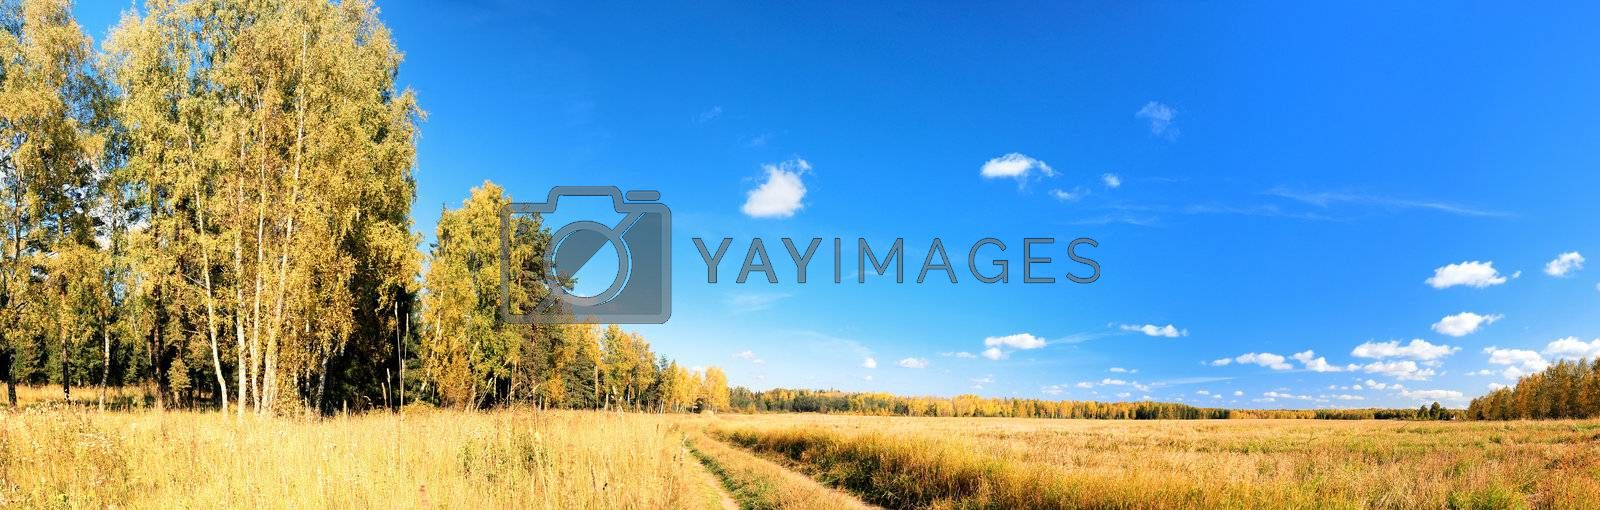 vibrant image of rural road and blue sky panorama